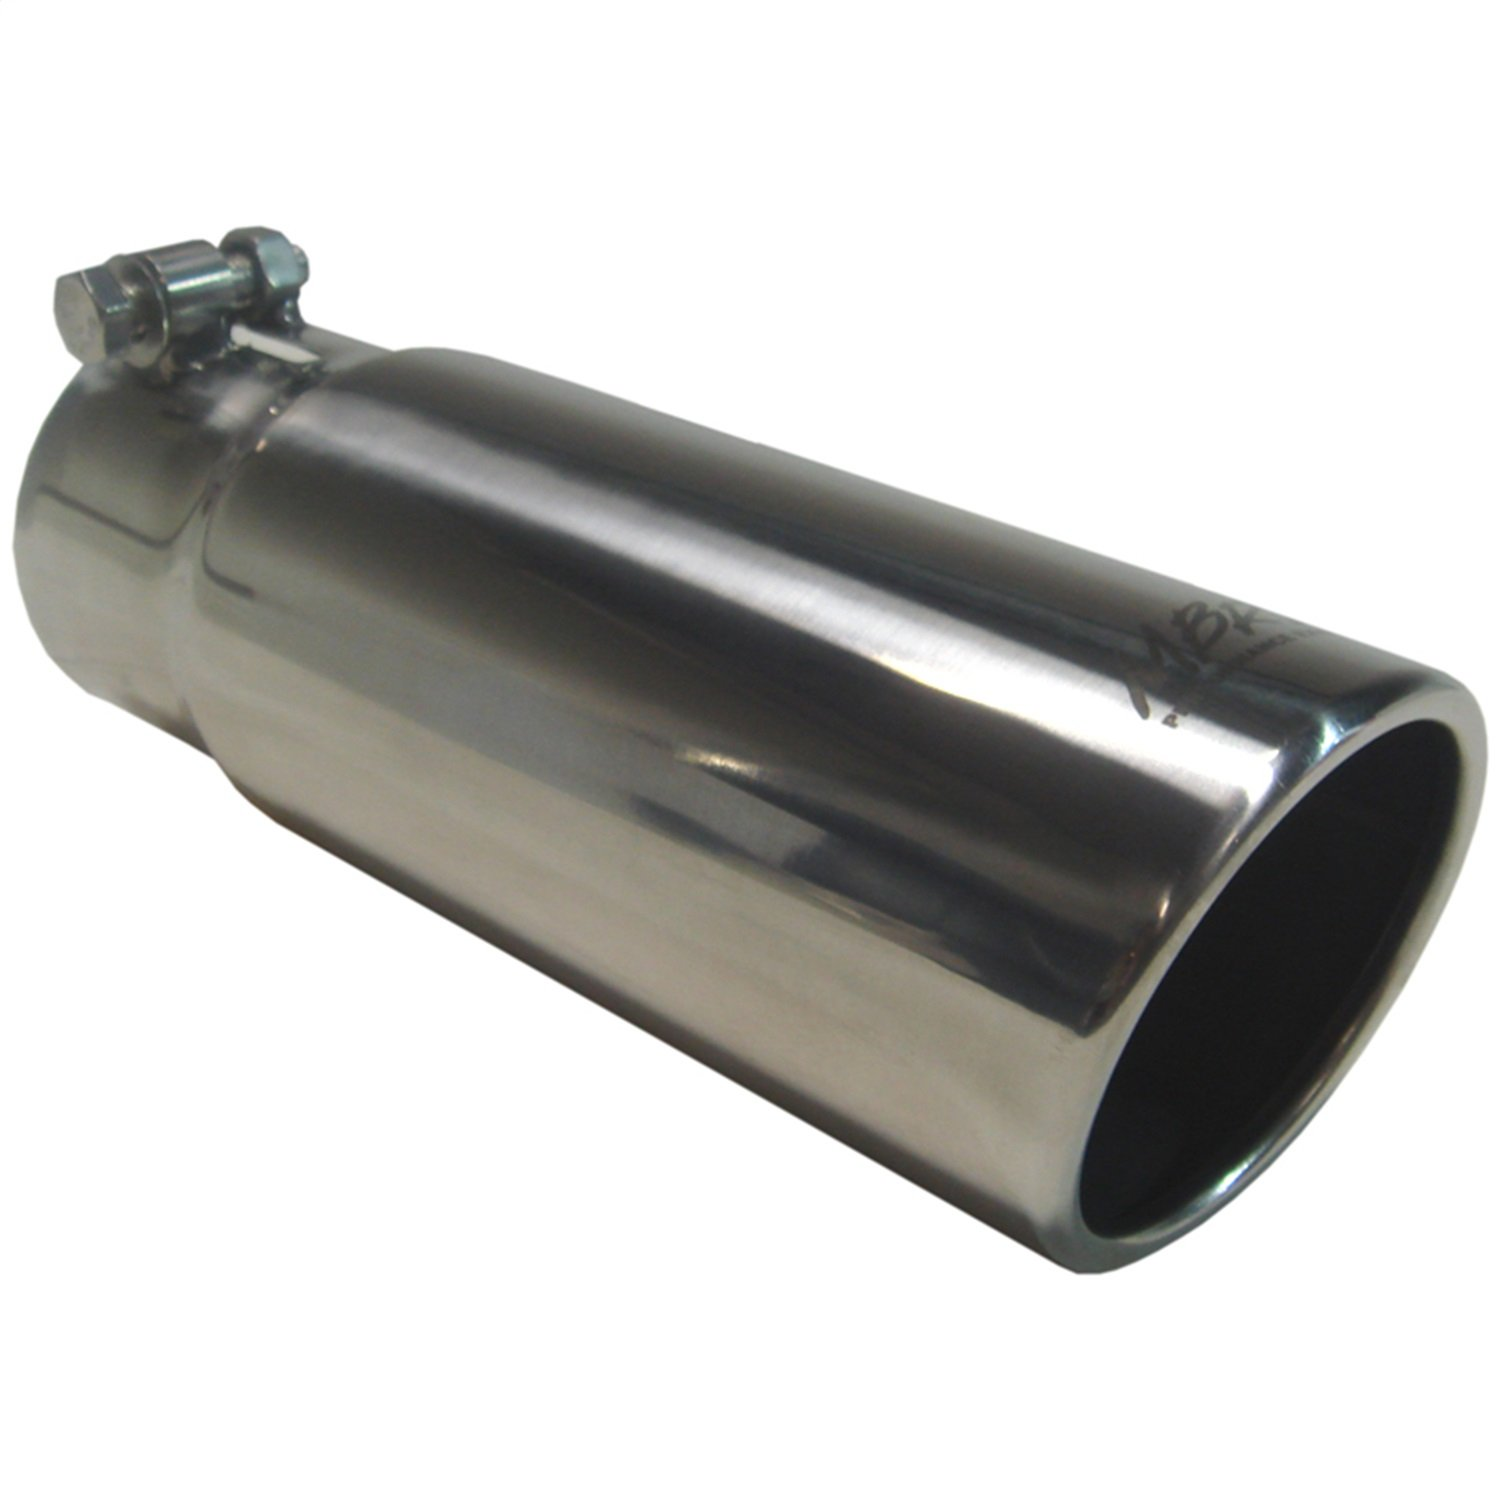 MBRP T5115 3 1/2'' O.D. Angled Rolled Exhaust Tip (T304)